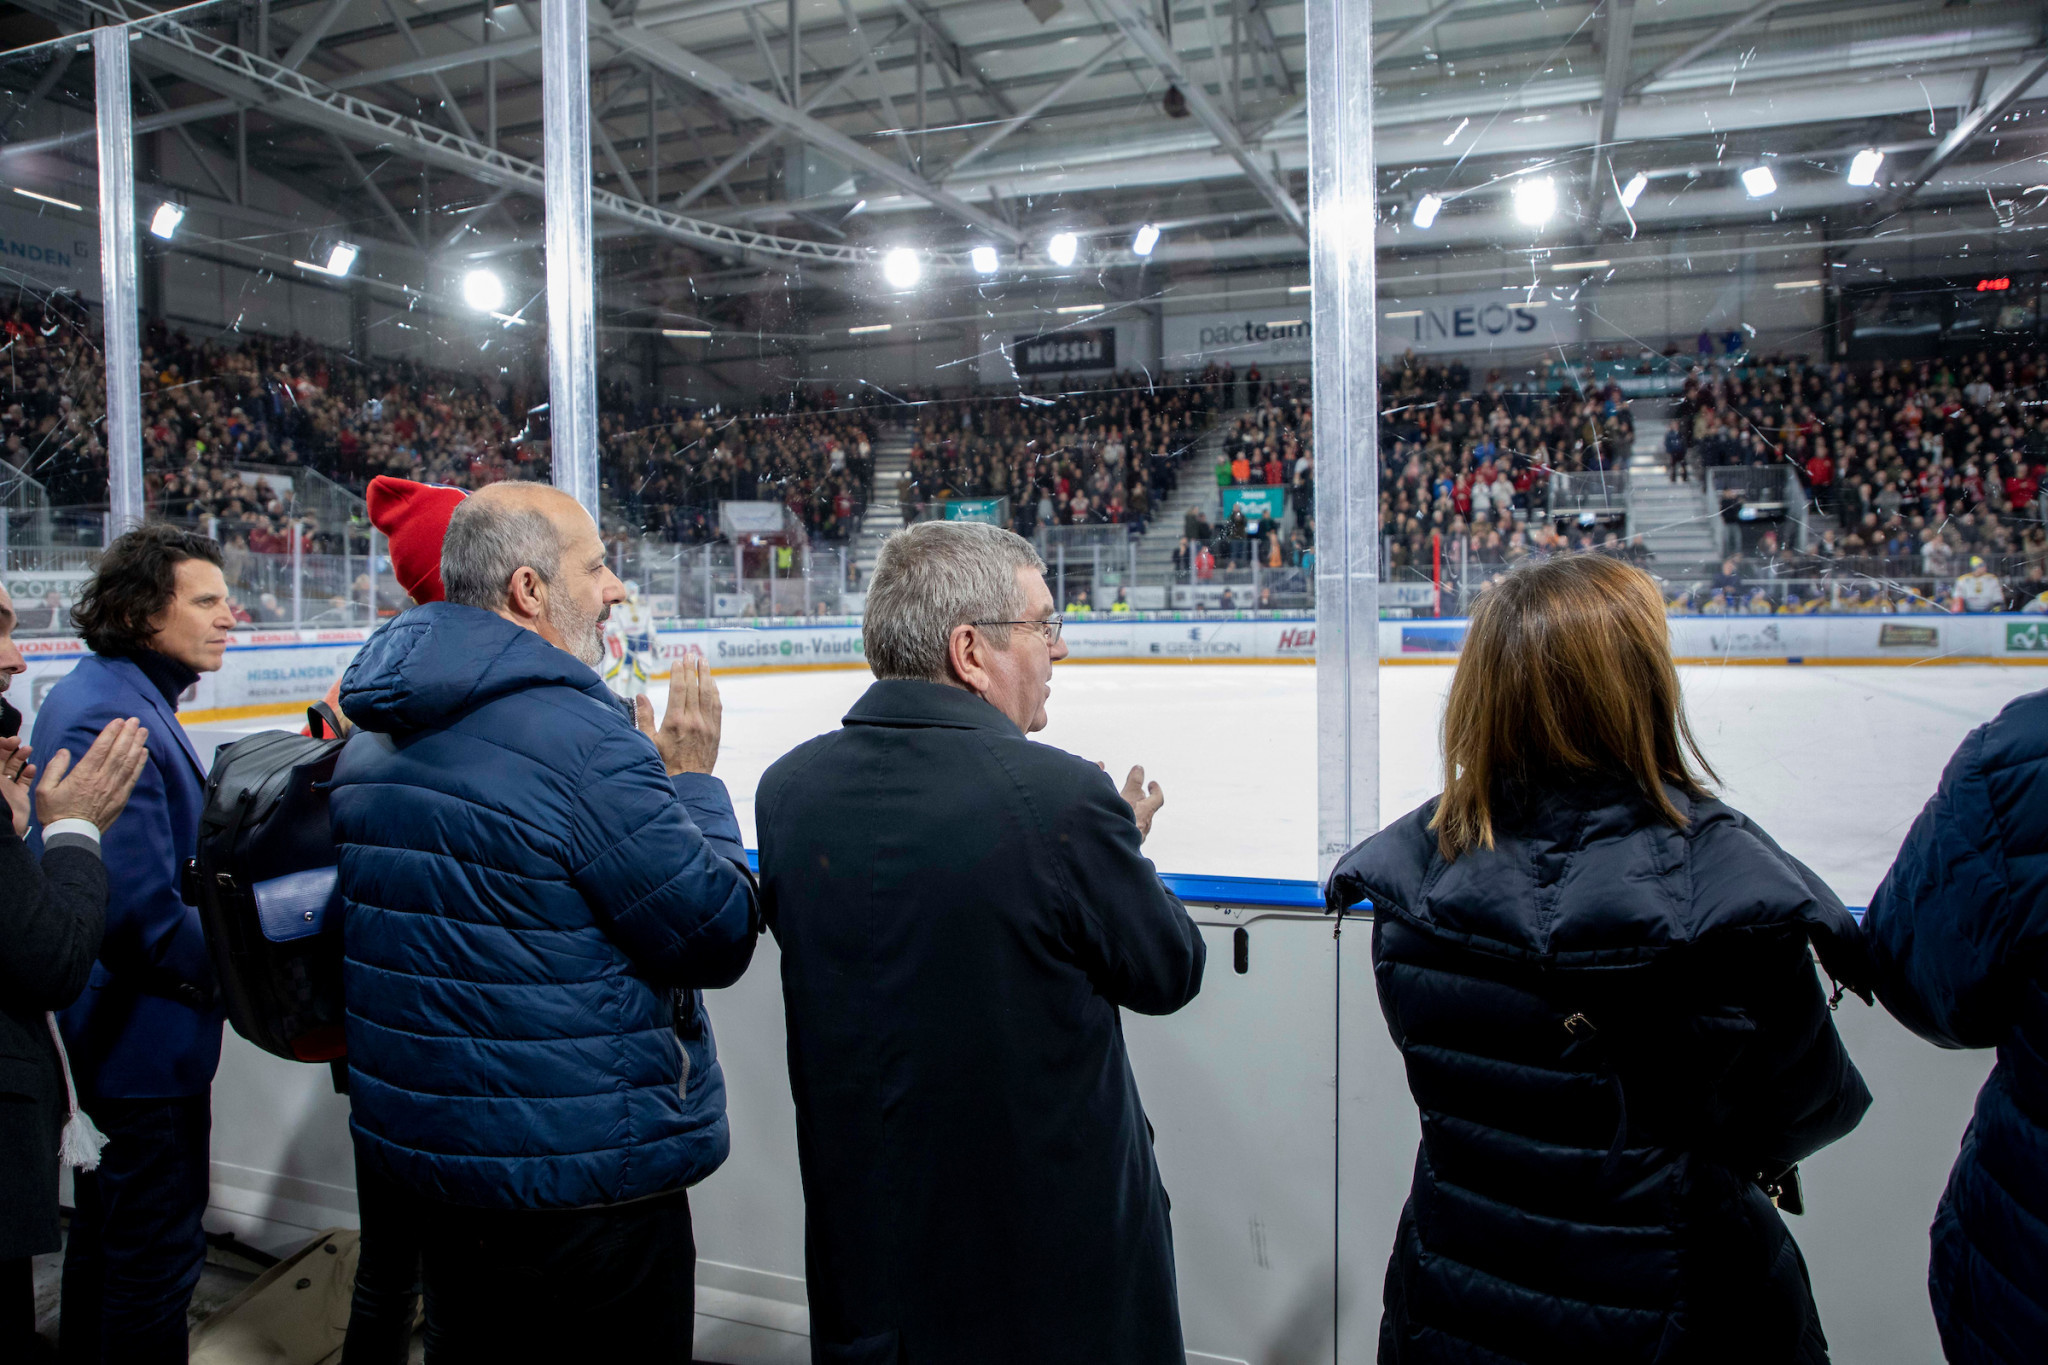 IOC President Thomas Bach was among the dignitaries in attendance at an ice hockey match in Lausanne, where mascot Yodli was unveiled ©IOC